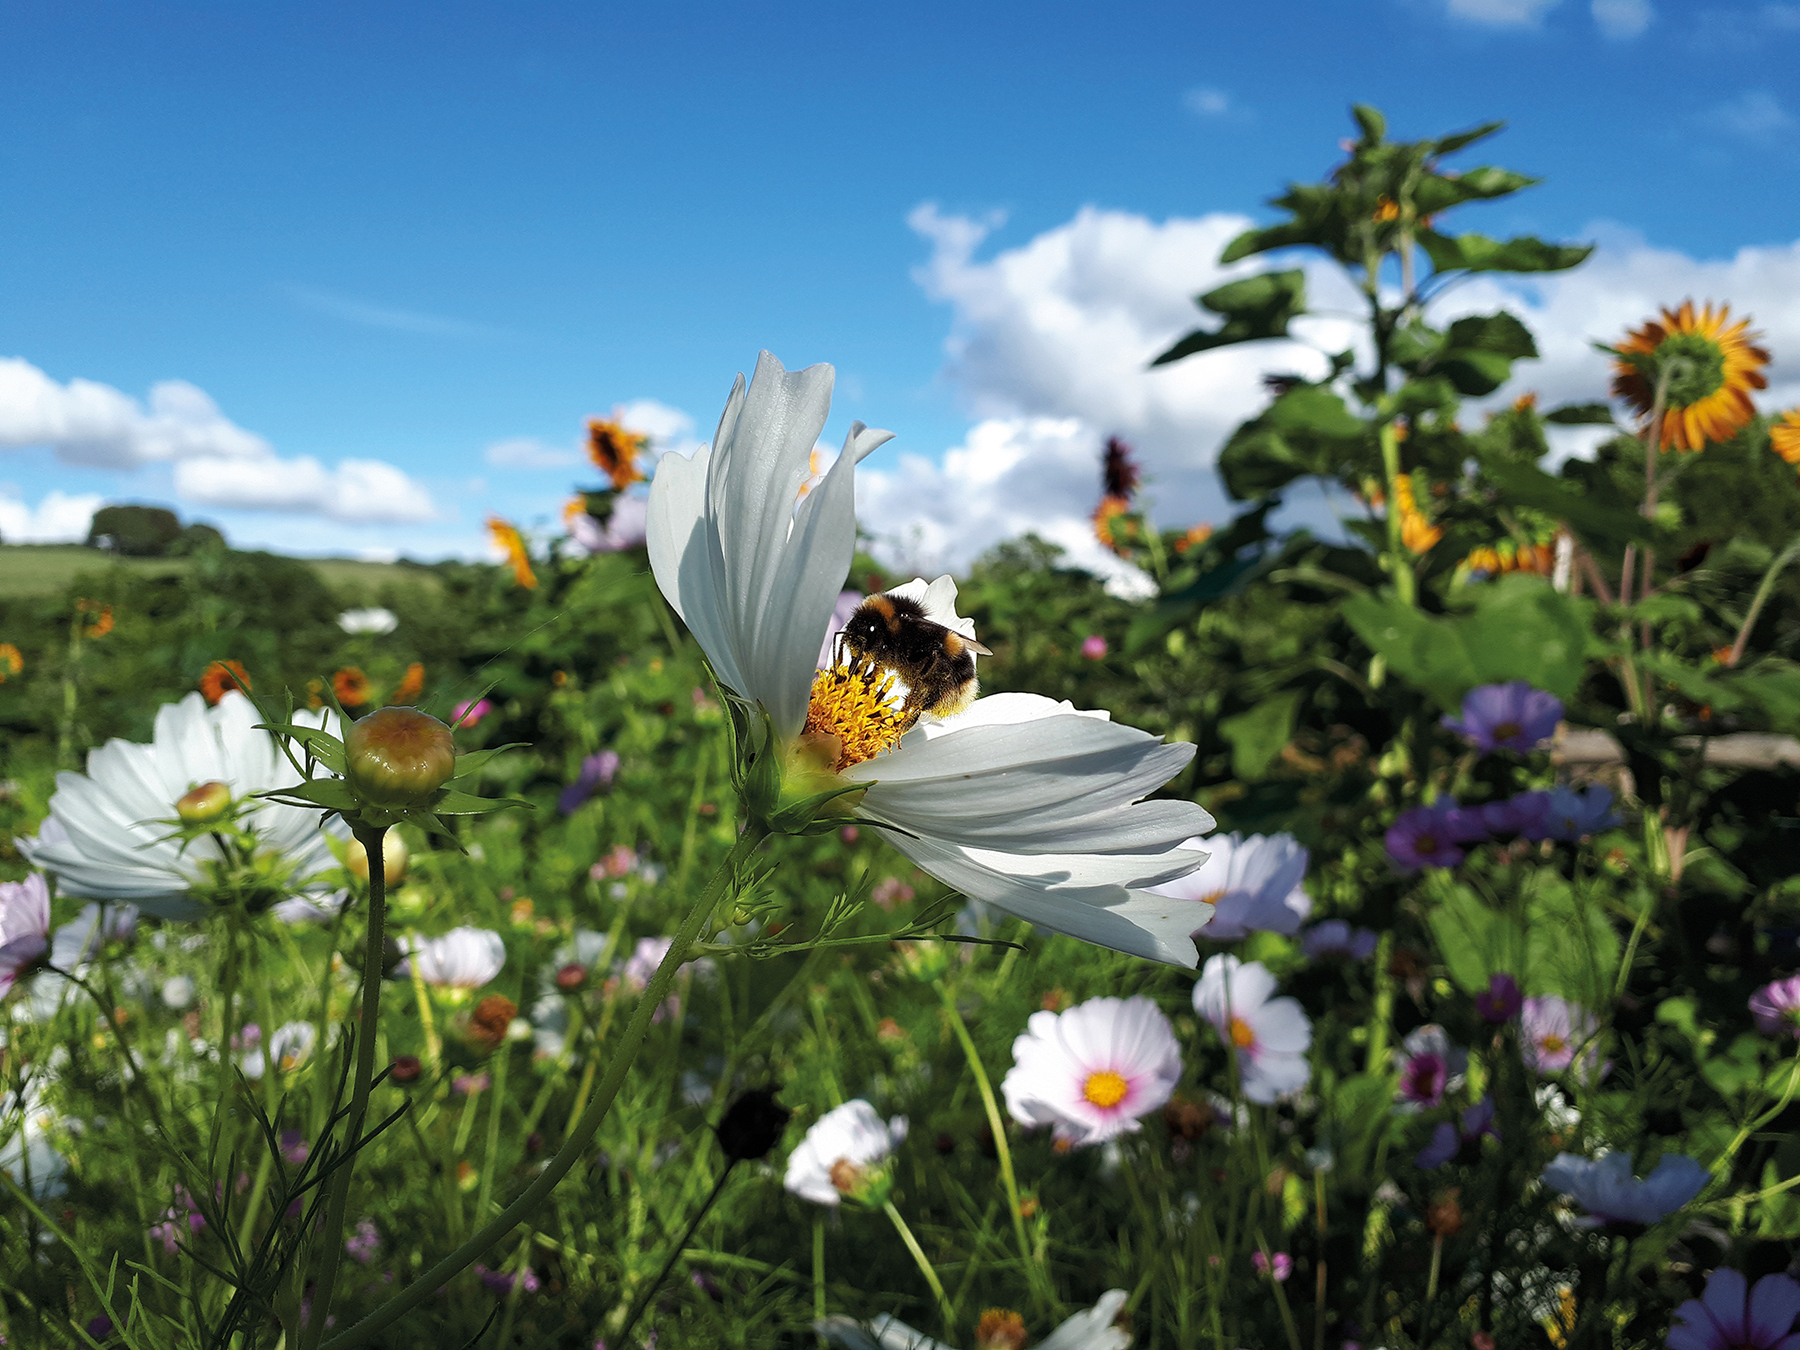 Dorset Wildlife Trust urging people to help the bees with its biggest campaign to date